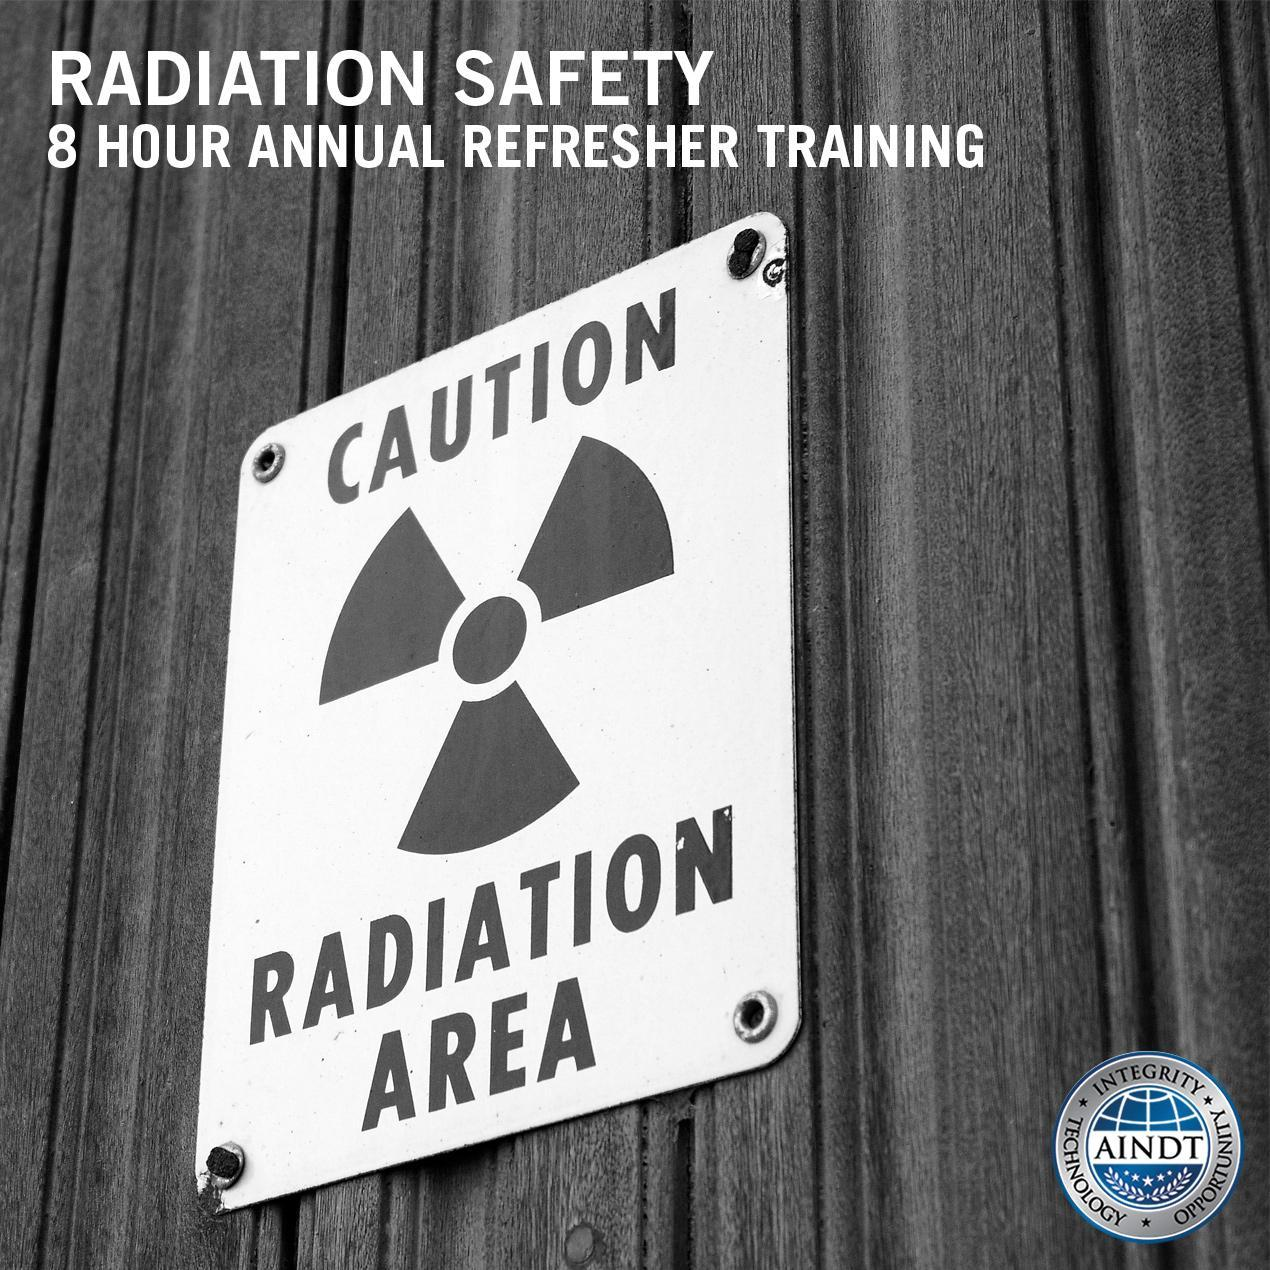 Radiation Safety Refresher